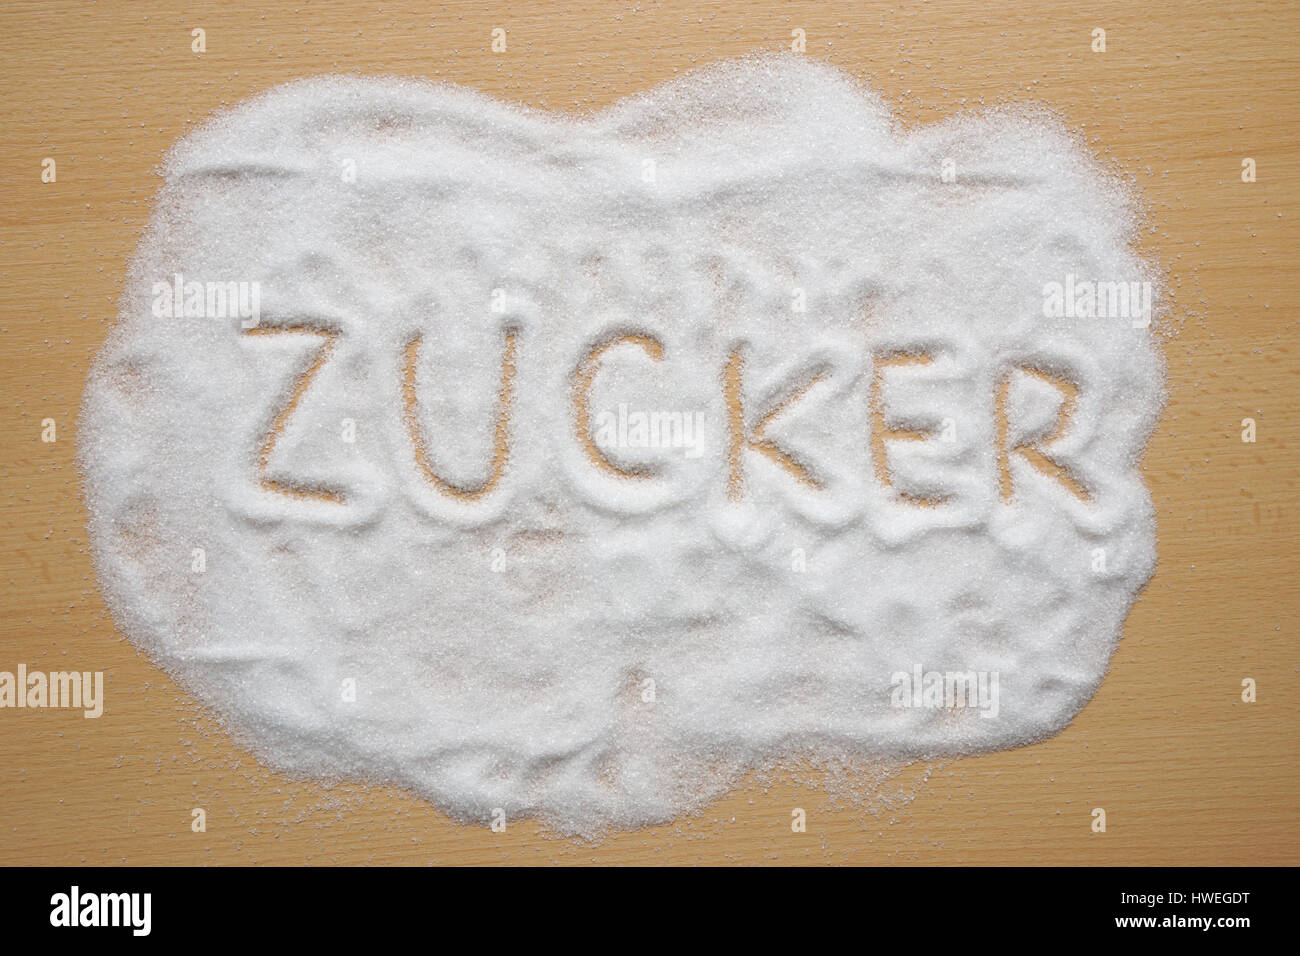 German word Zucker written in sugar - Stock Image